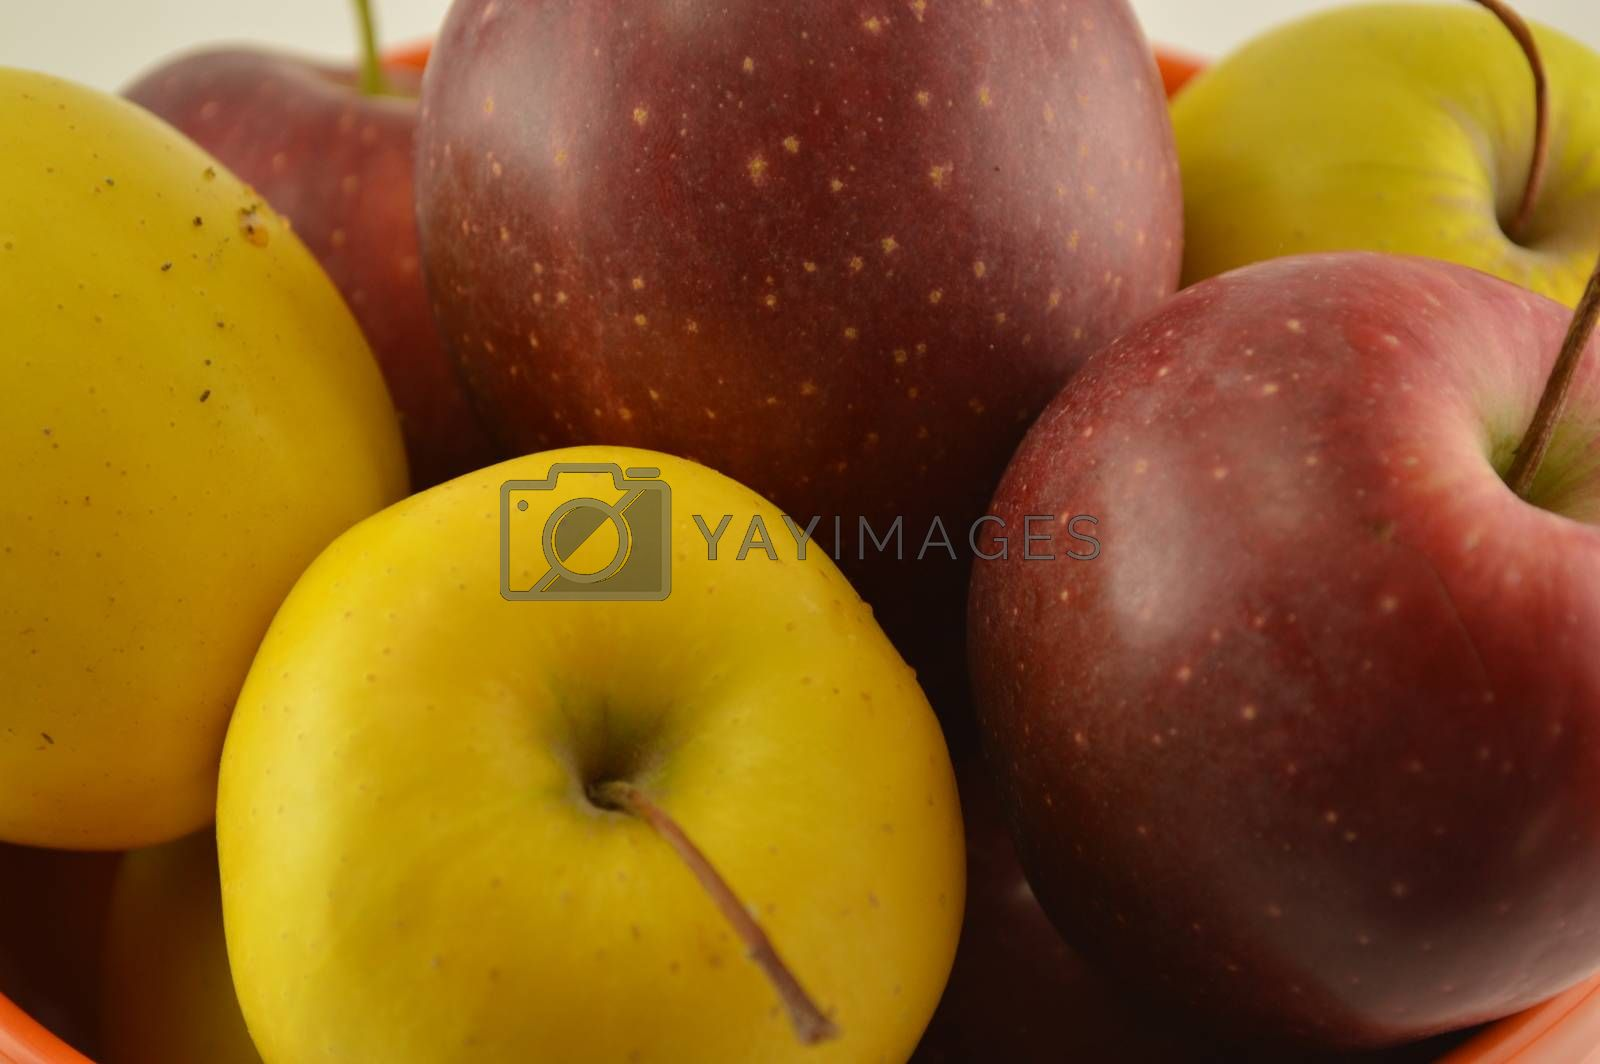 Red and white apple